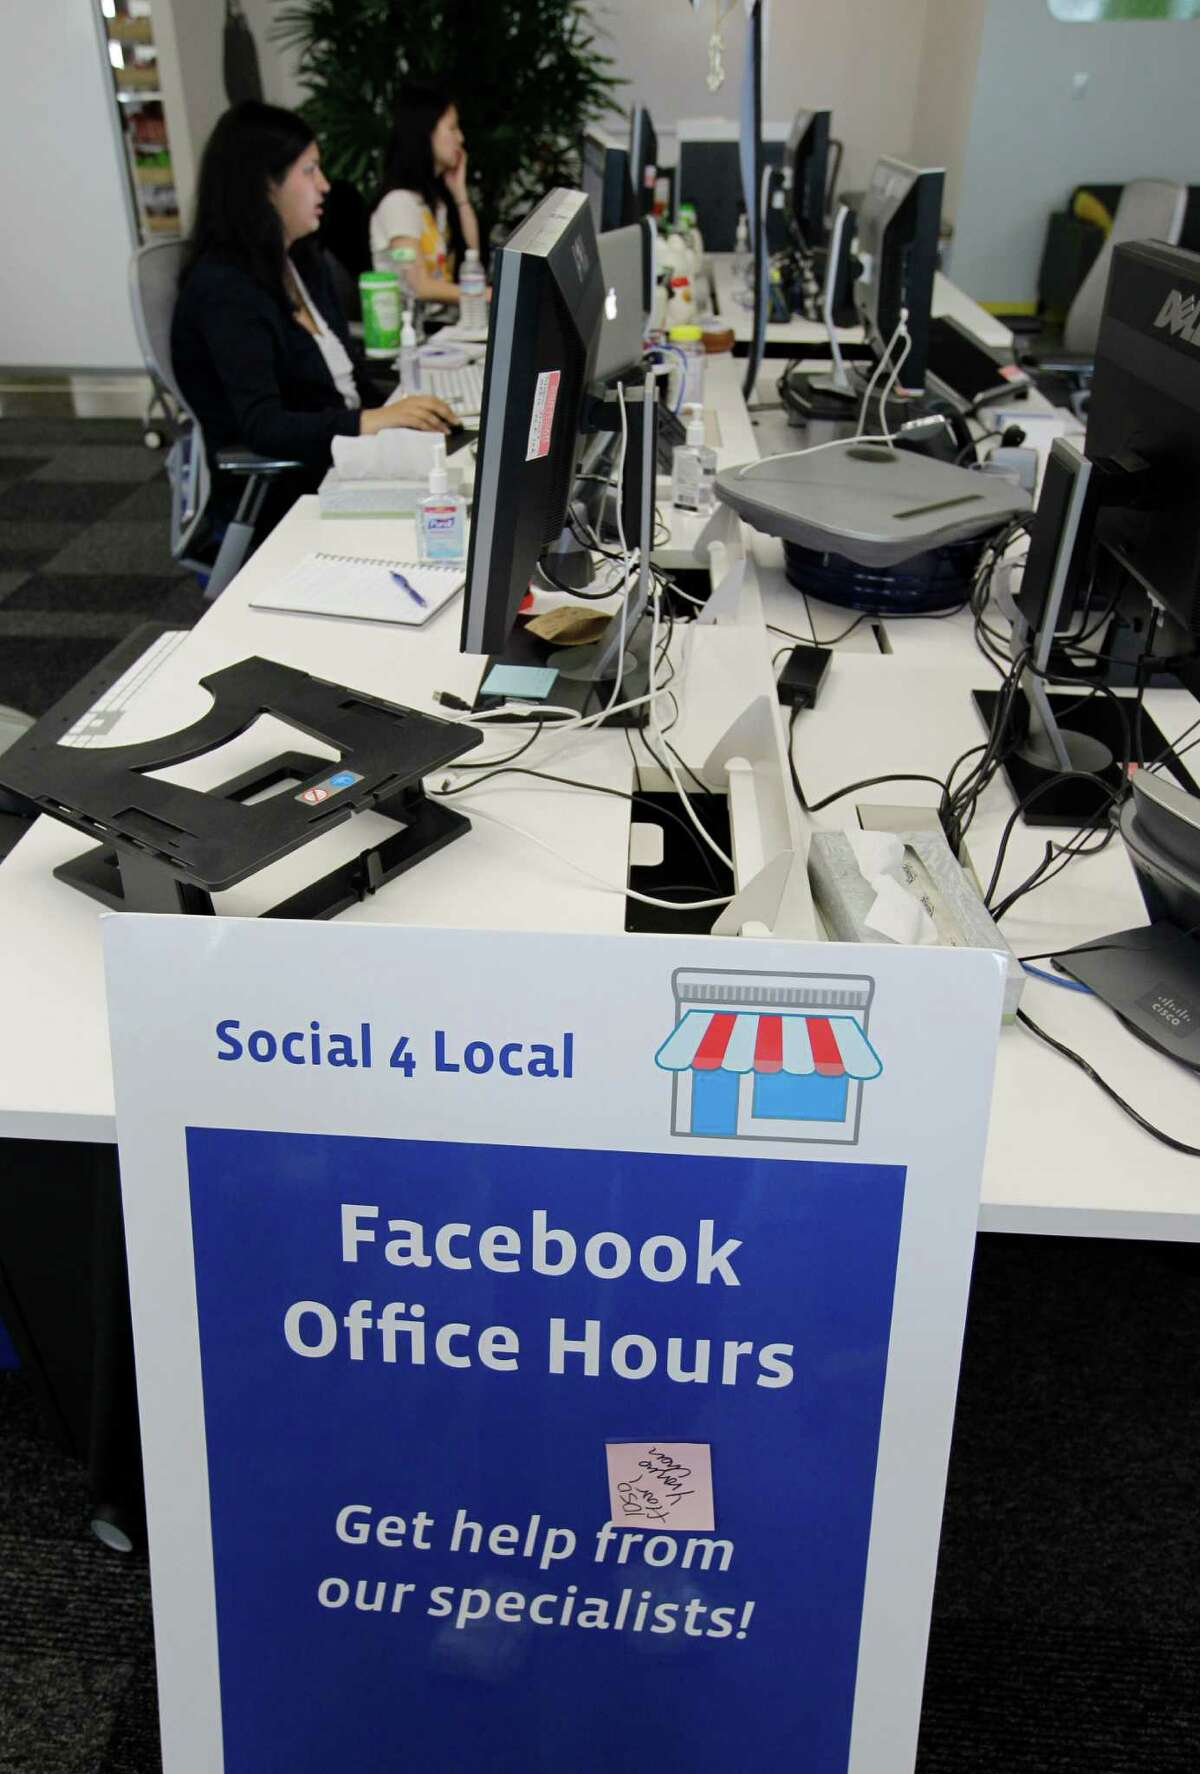 Facebook is based in Menlo Park, Calif. Its stock fell to $29.84 Tuesday, down 24 percent since its IPO.